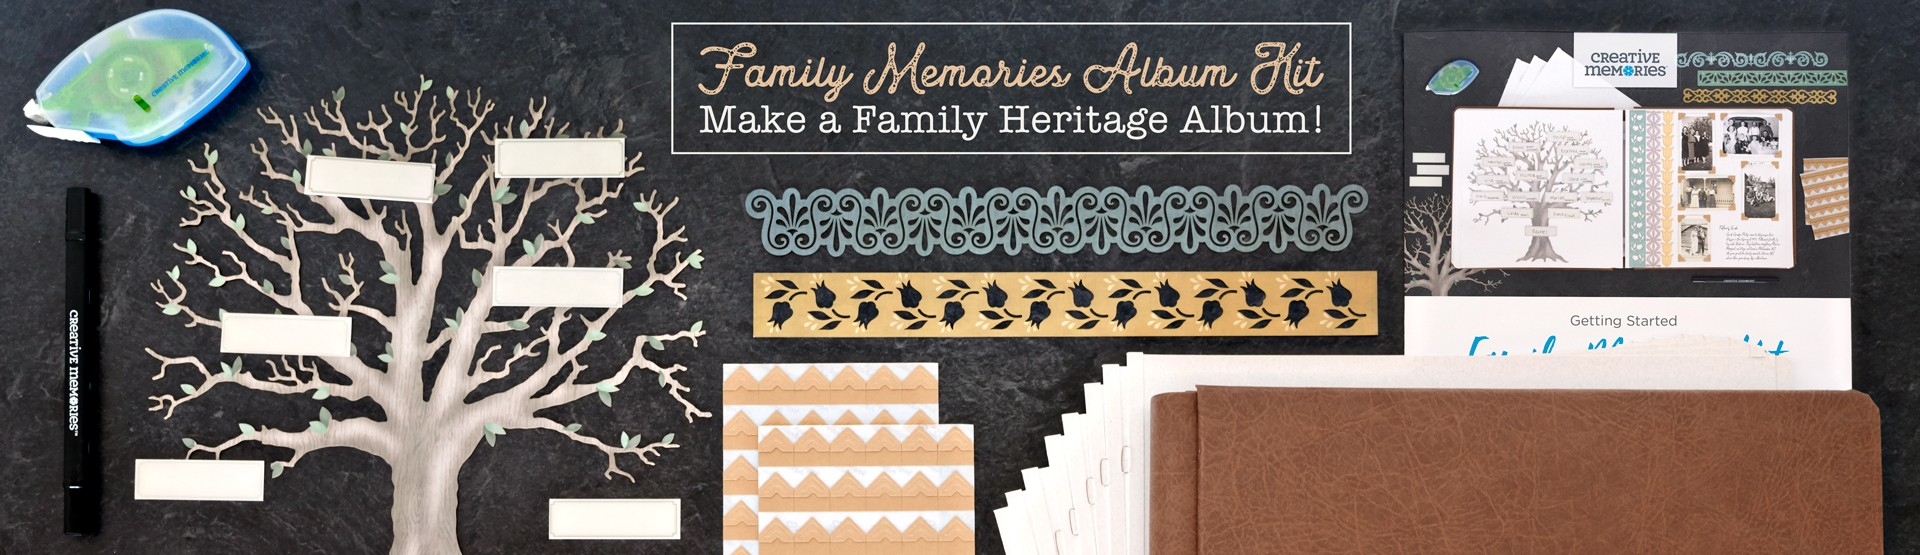 Heritage Albums: Family Memories